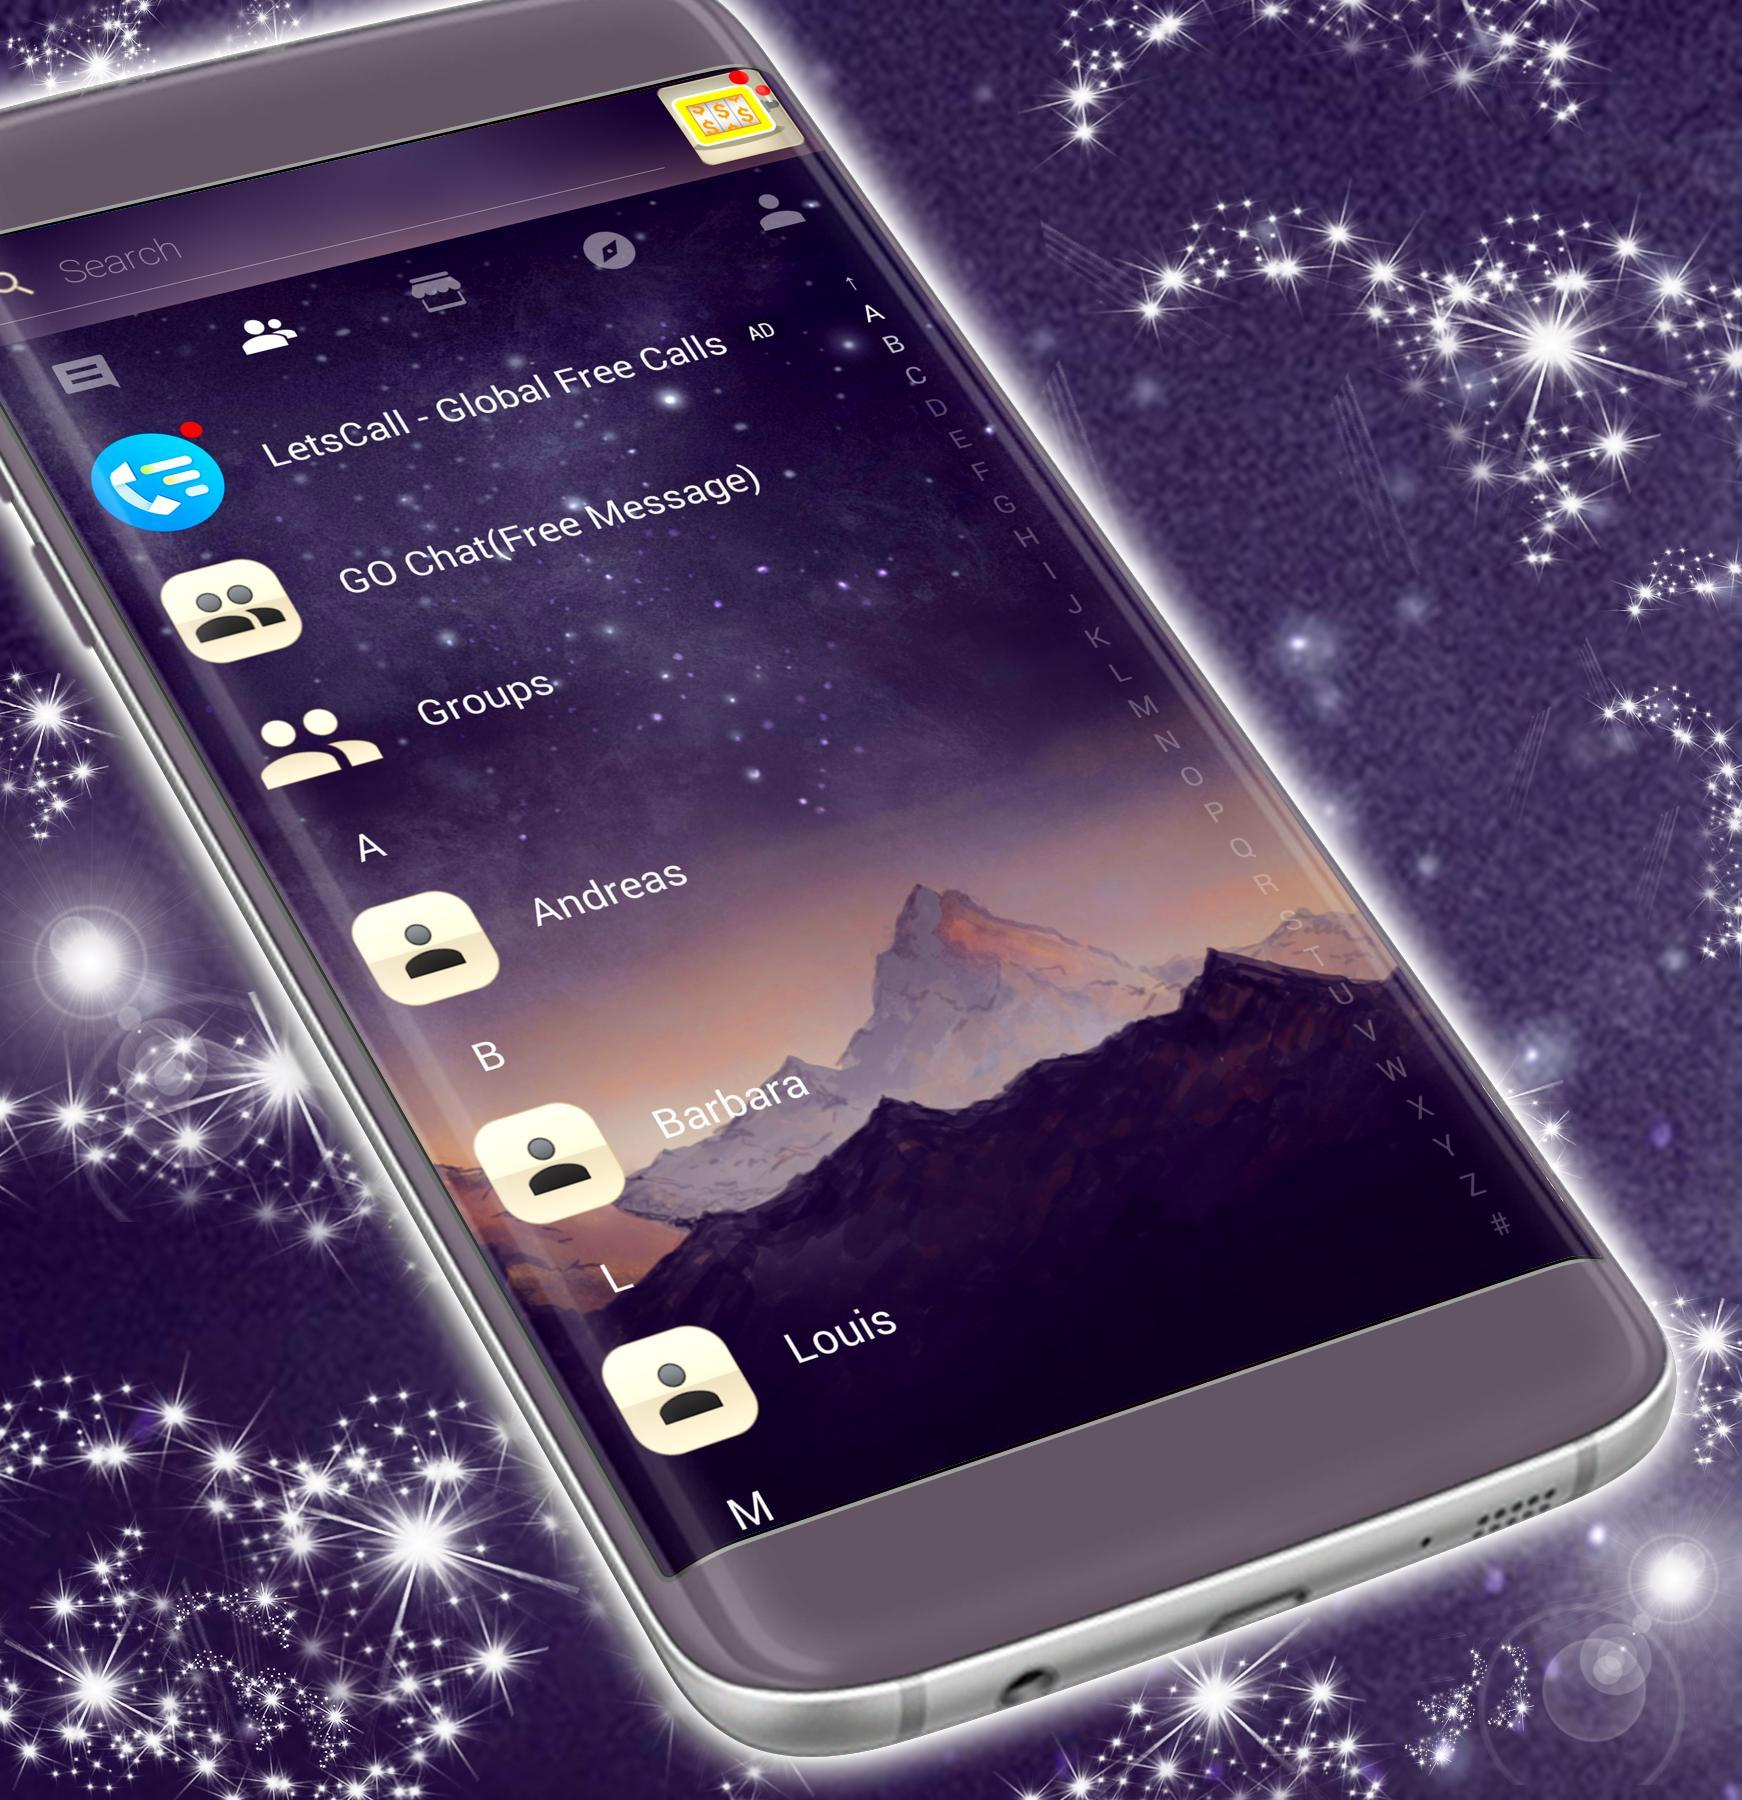 Sms Theme For Samsung J5 Prime for Android - APK Download